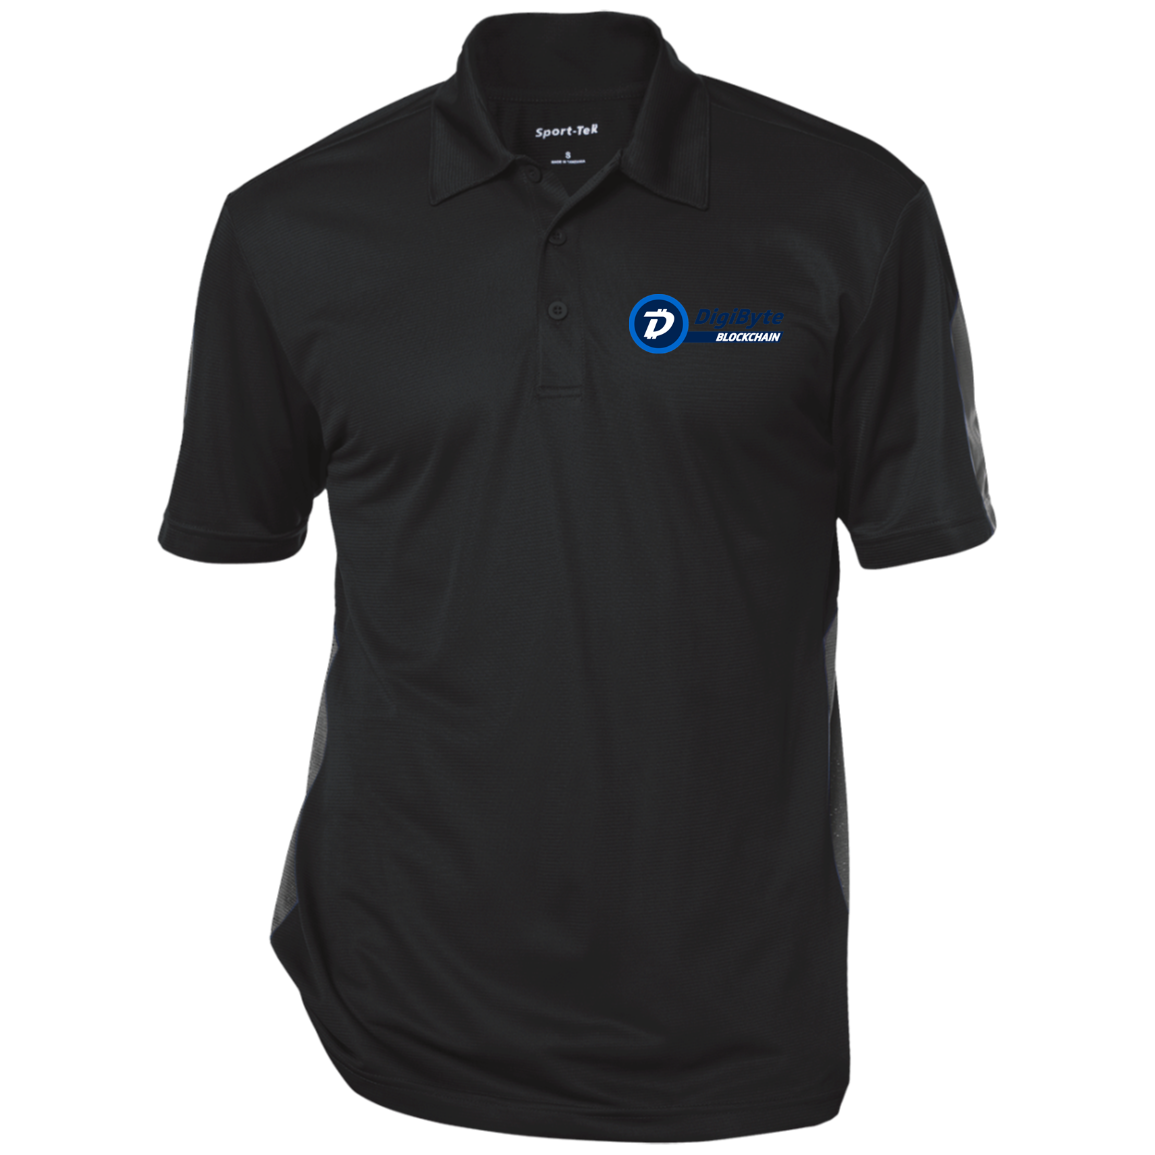 DigiByte Pure – Embroidered Performance Polo by Sport-Tek